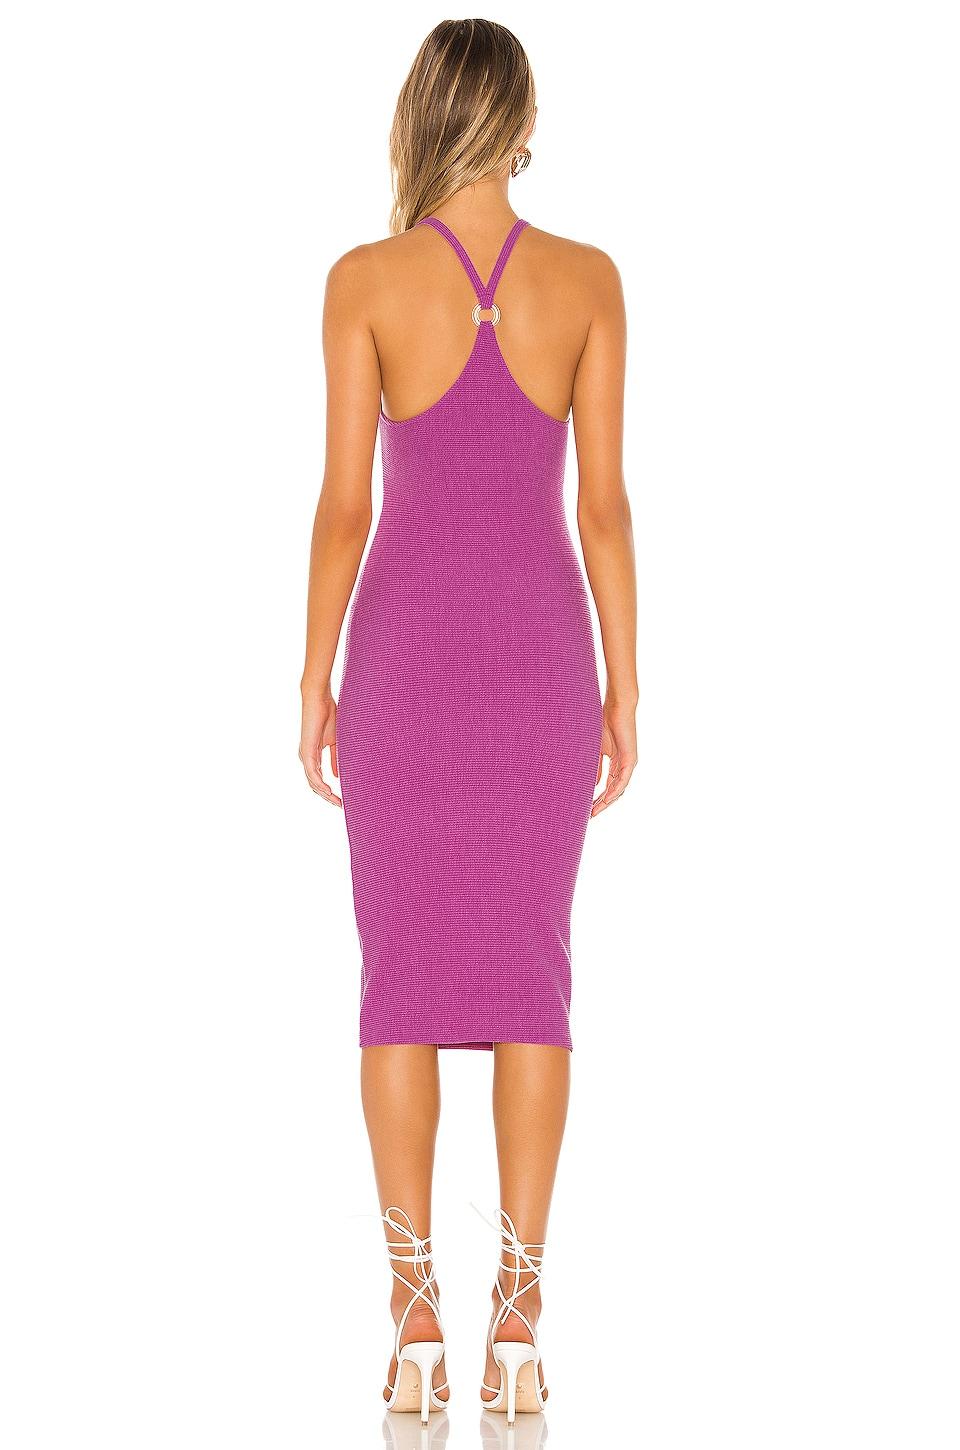 Lydia Midi Dress, view 3, click to view large image.